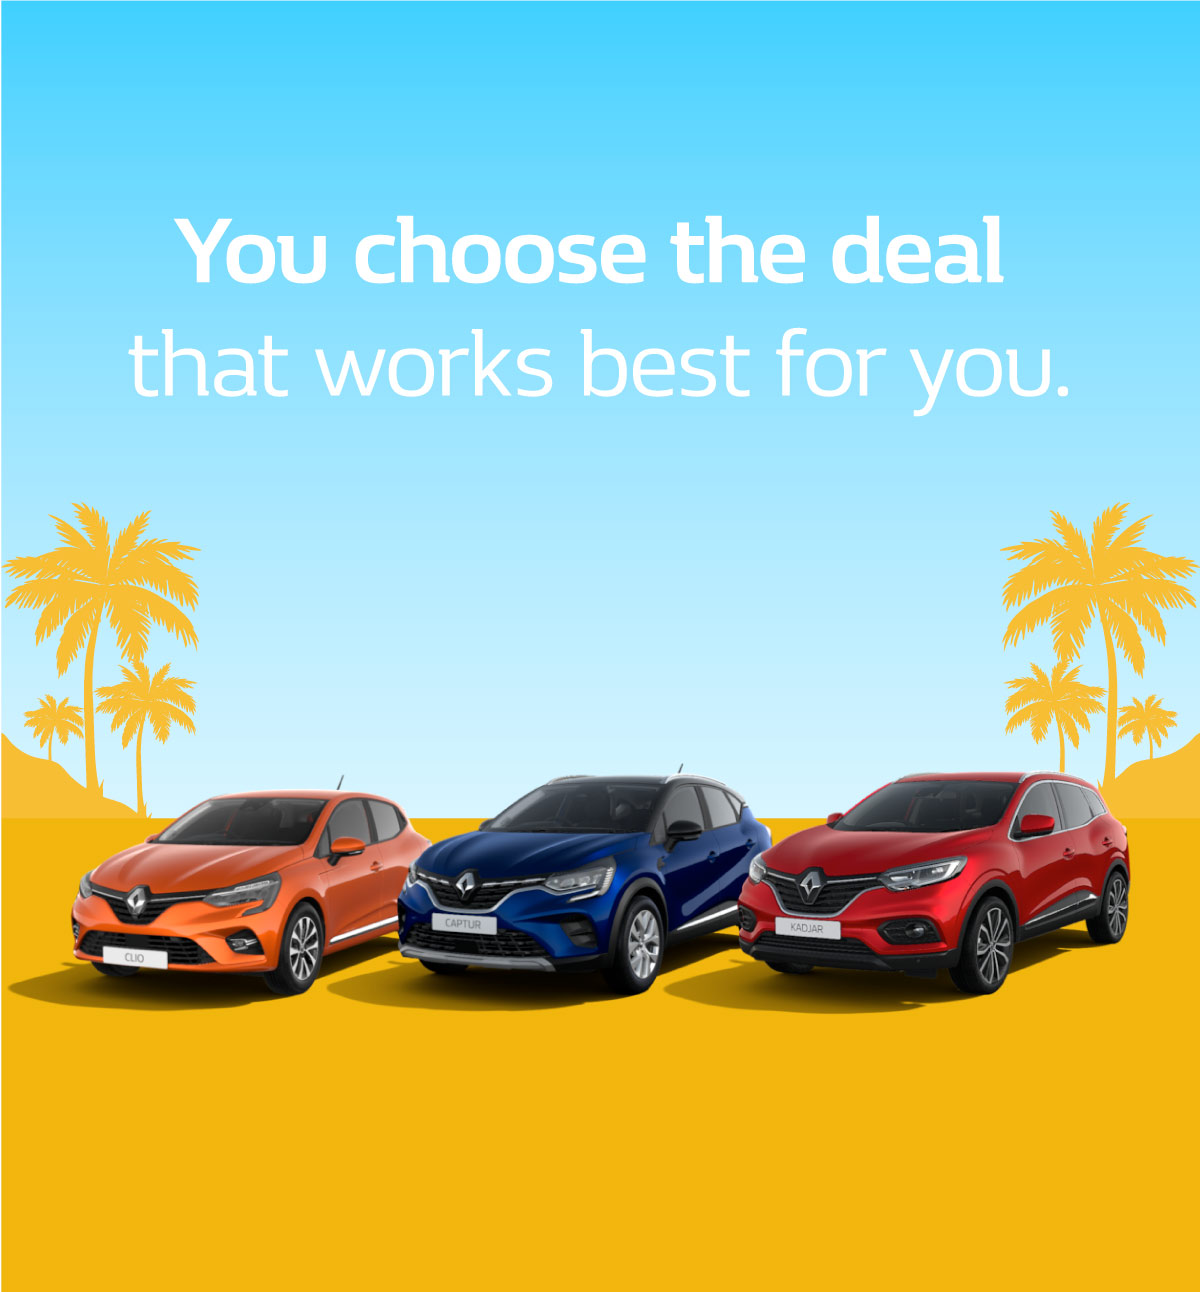 Renault Choose your offer